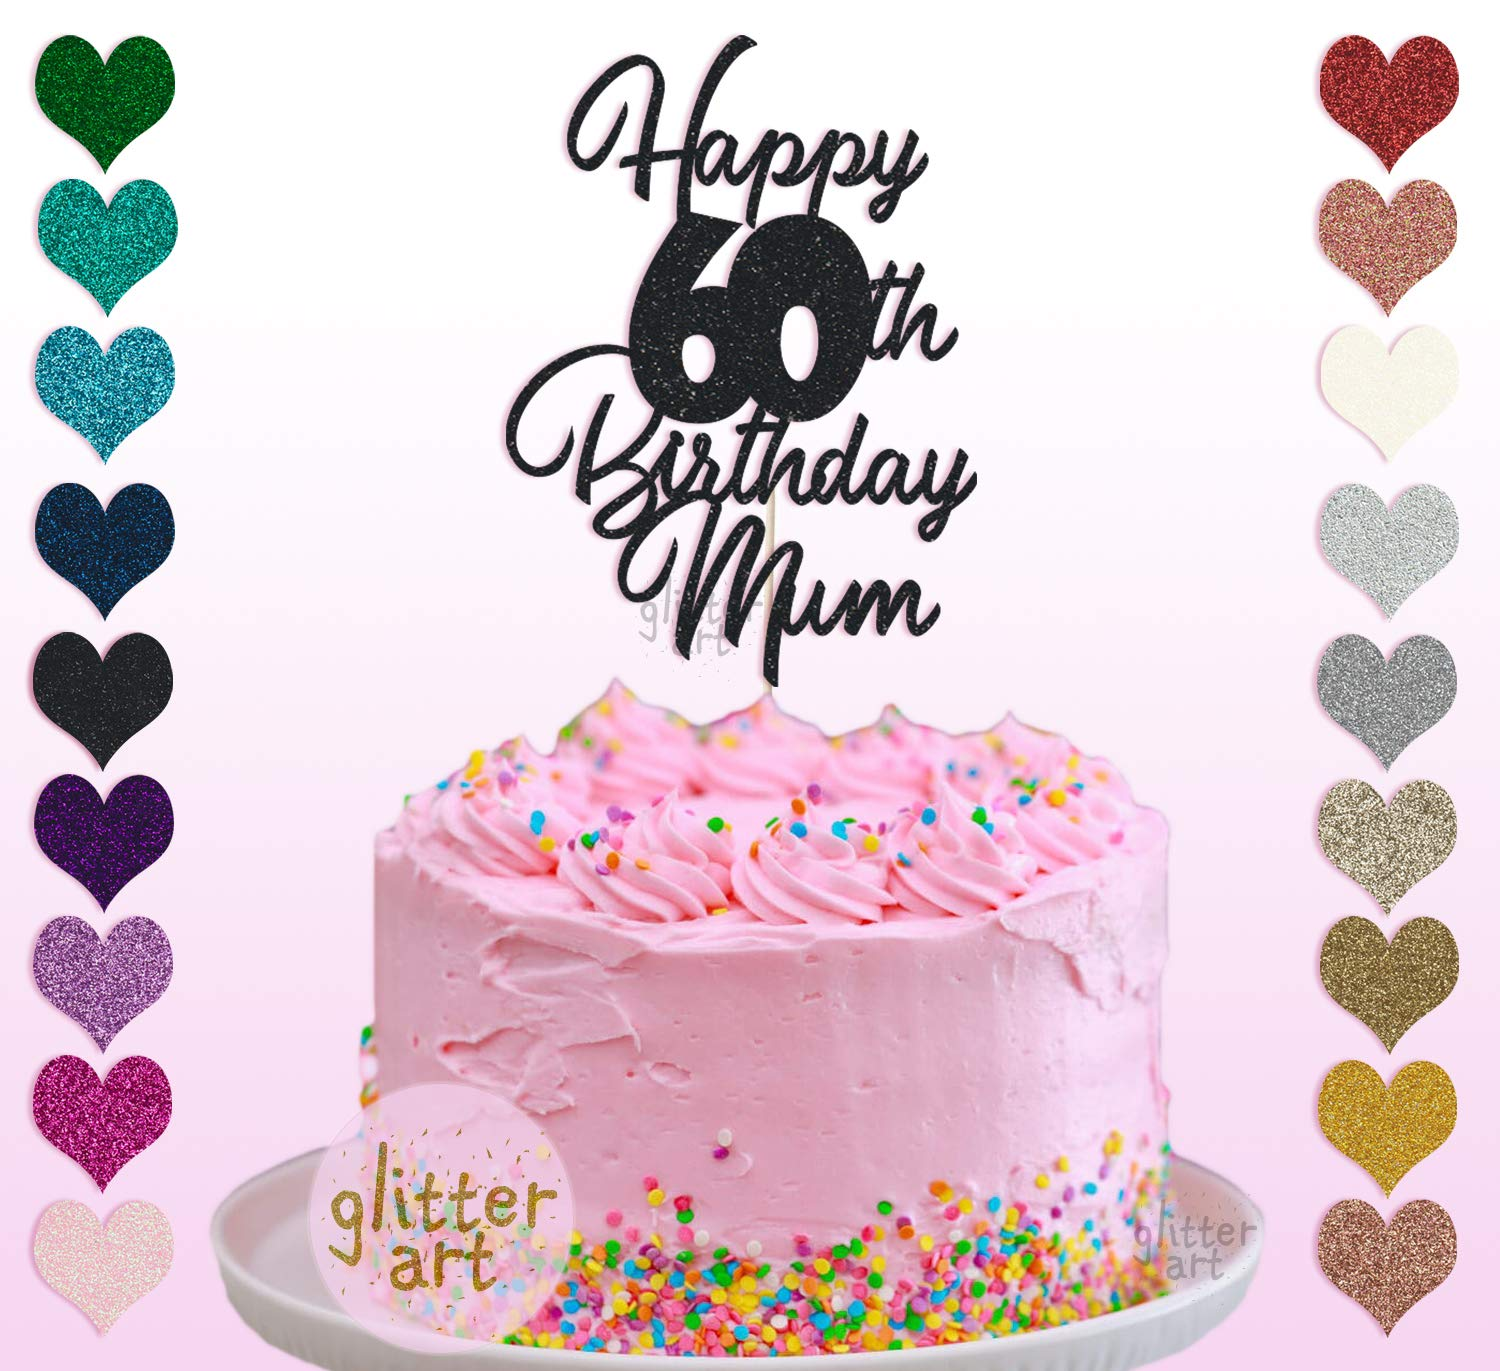 Awesome Personalised Custom Happy 60Th Birthday Mum Party Cake Topper Name Funny Birthday Cards Online Bapapcheapnameinfo